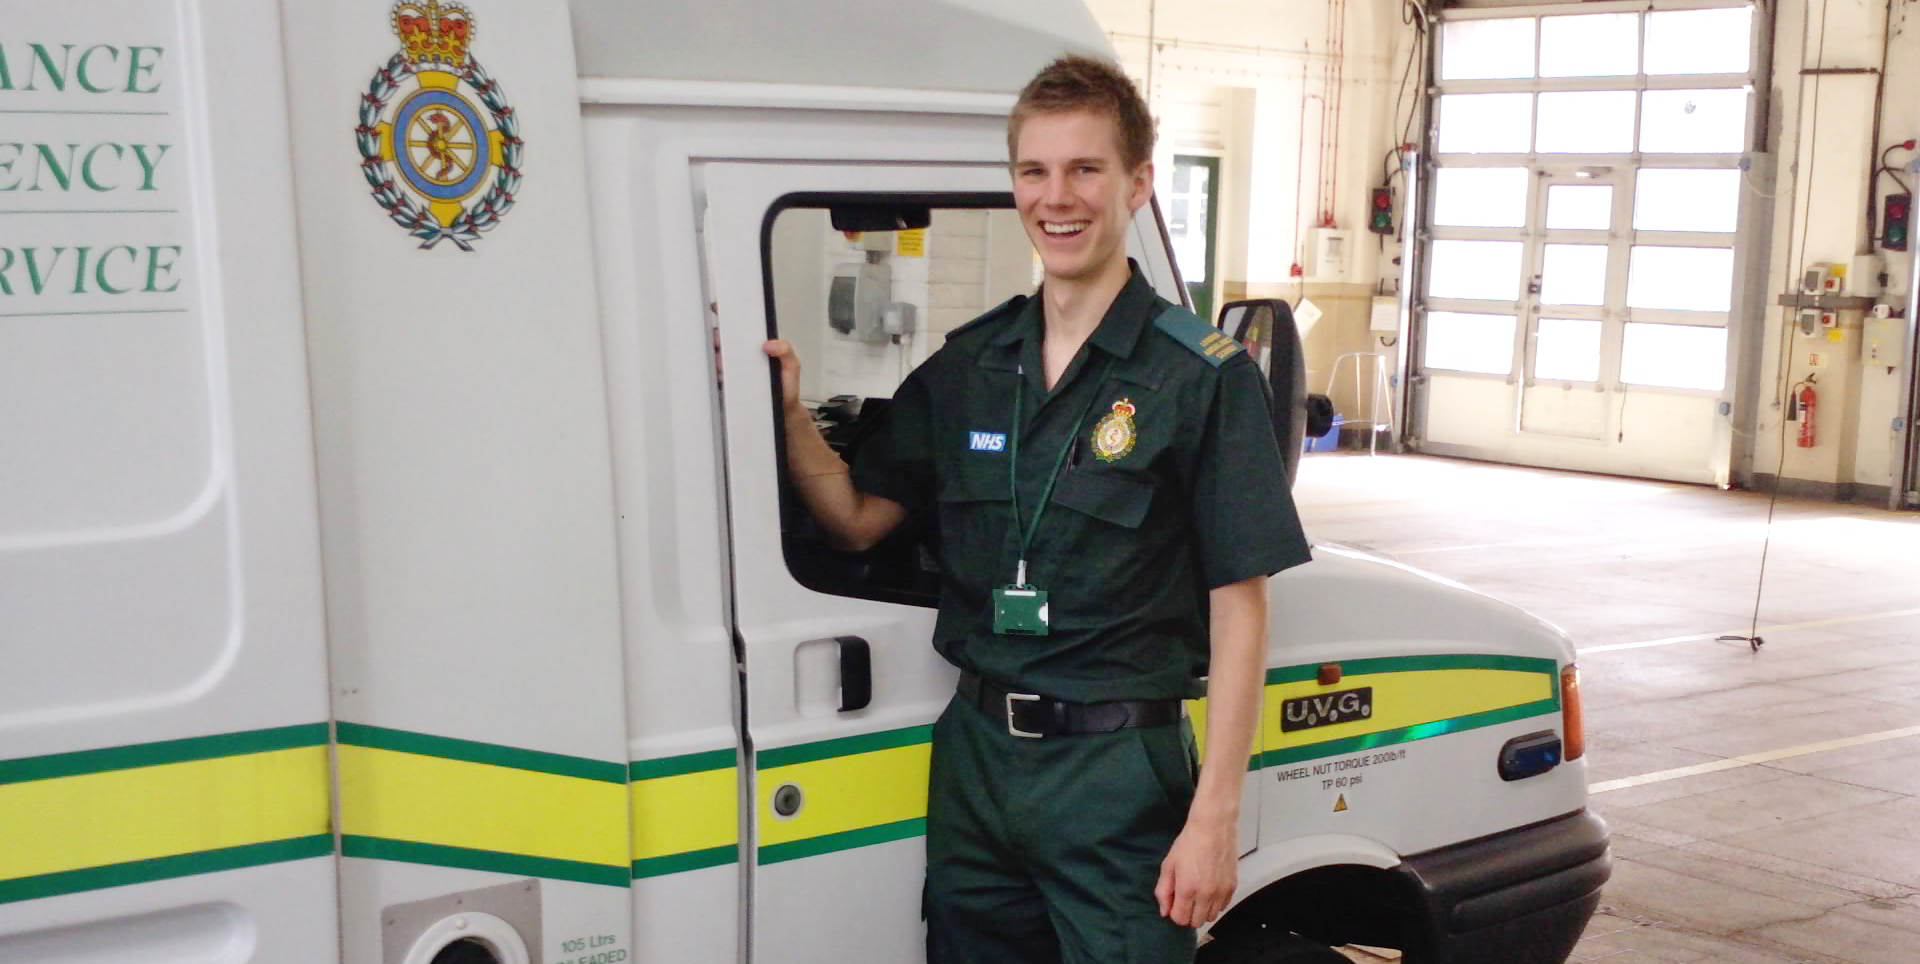 Phil Radford when he worked as a paramedic for the London Ambulance Service